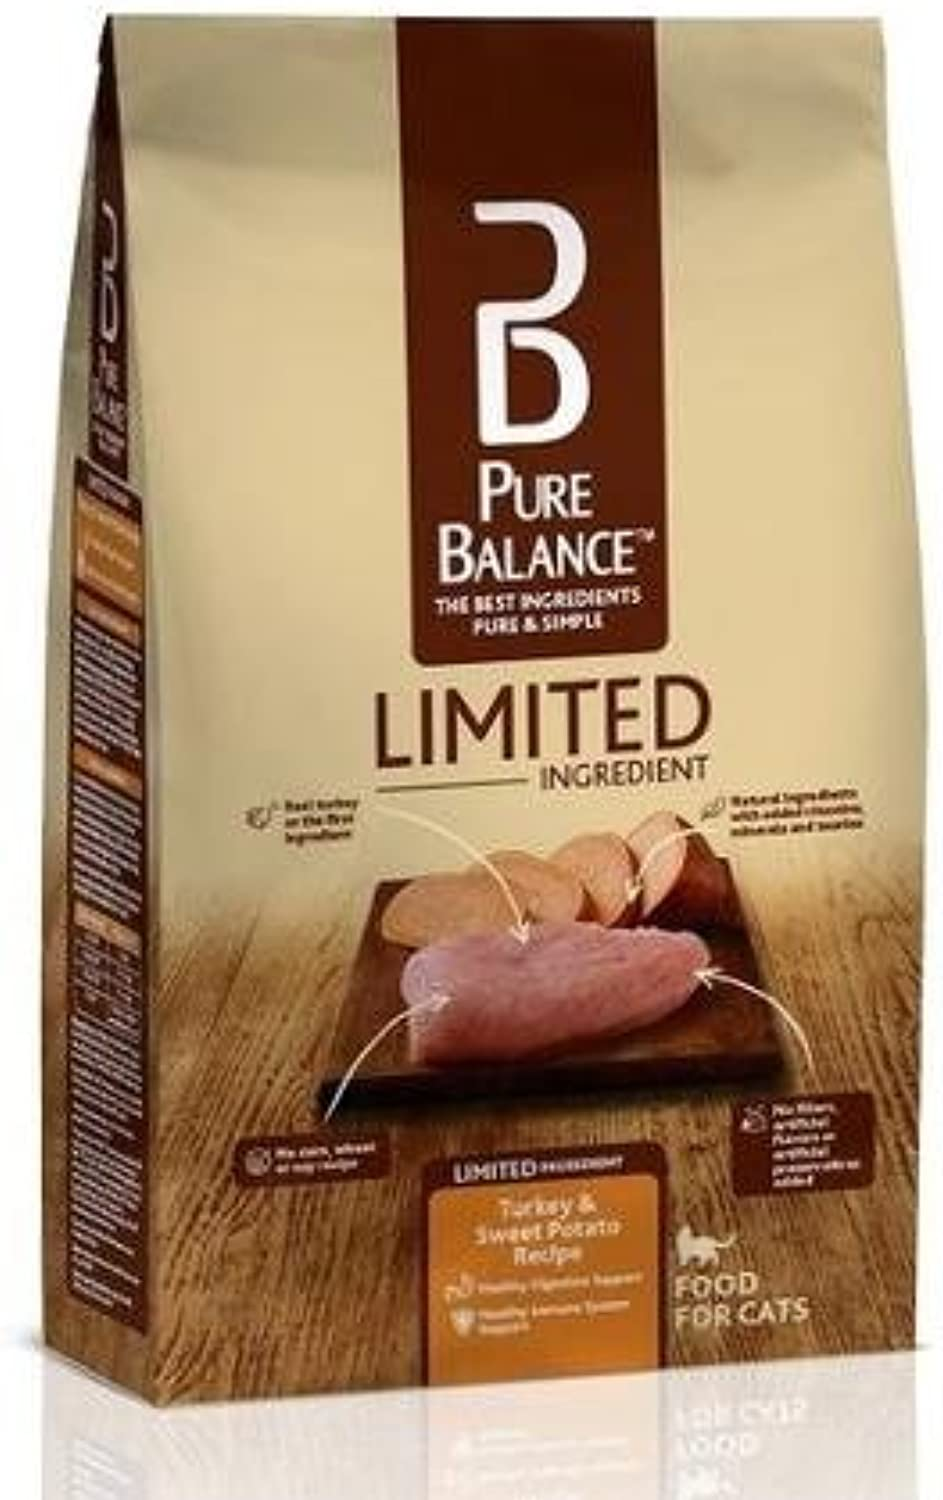 Pure Balance Limited Ingredient 12 Lbs Bag Turkey & Sweet Potato Cat Food, Super Premium Recipes Contains No Corn, Wheat or Soy, 1st Ingredient Is Real Turkey, Build Lean Muscle Mass to Run Jump Play